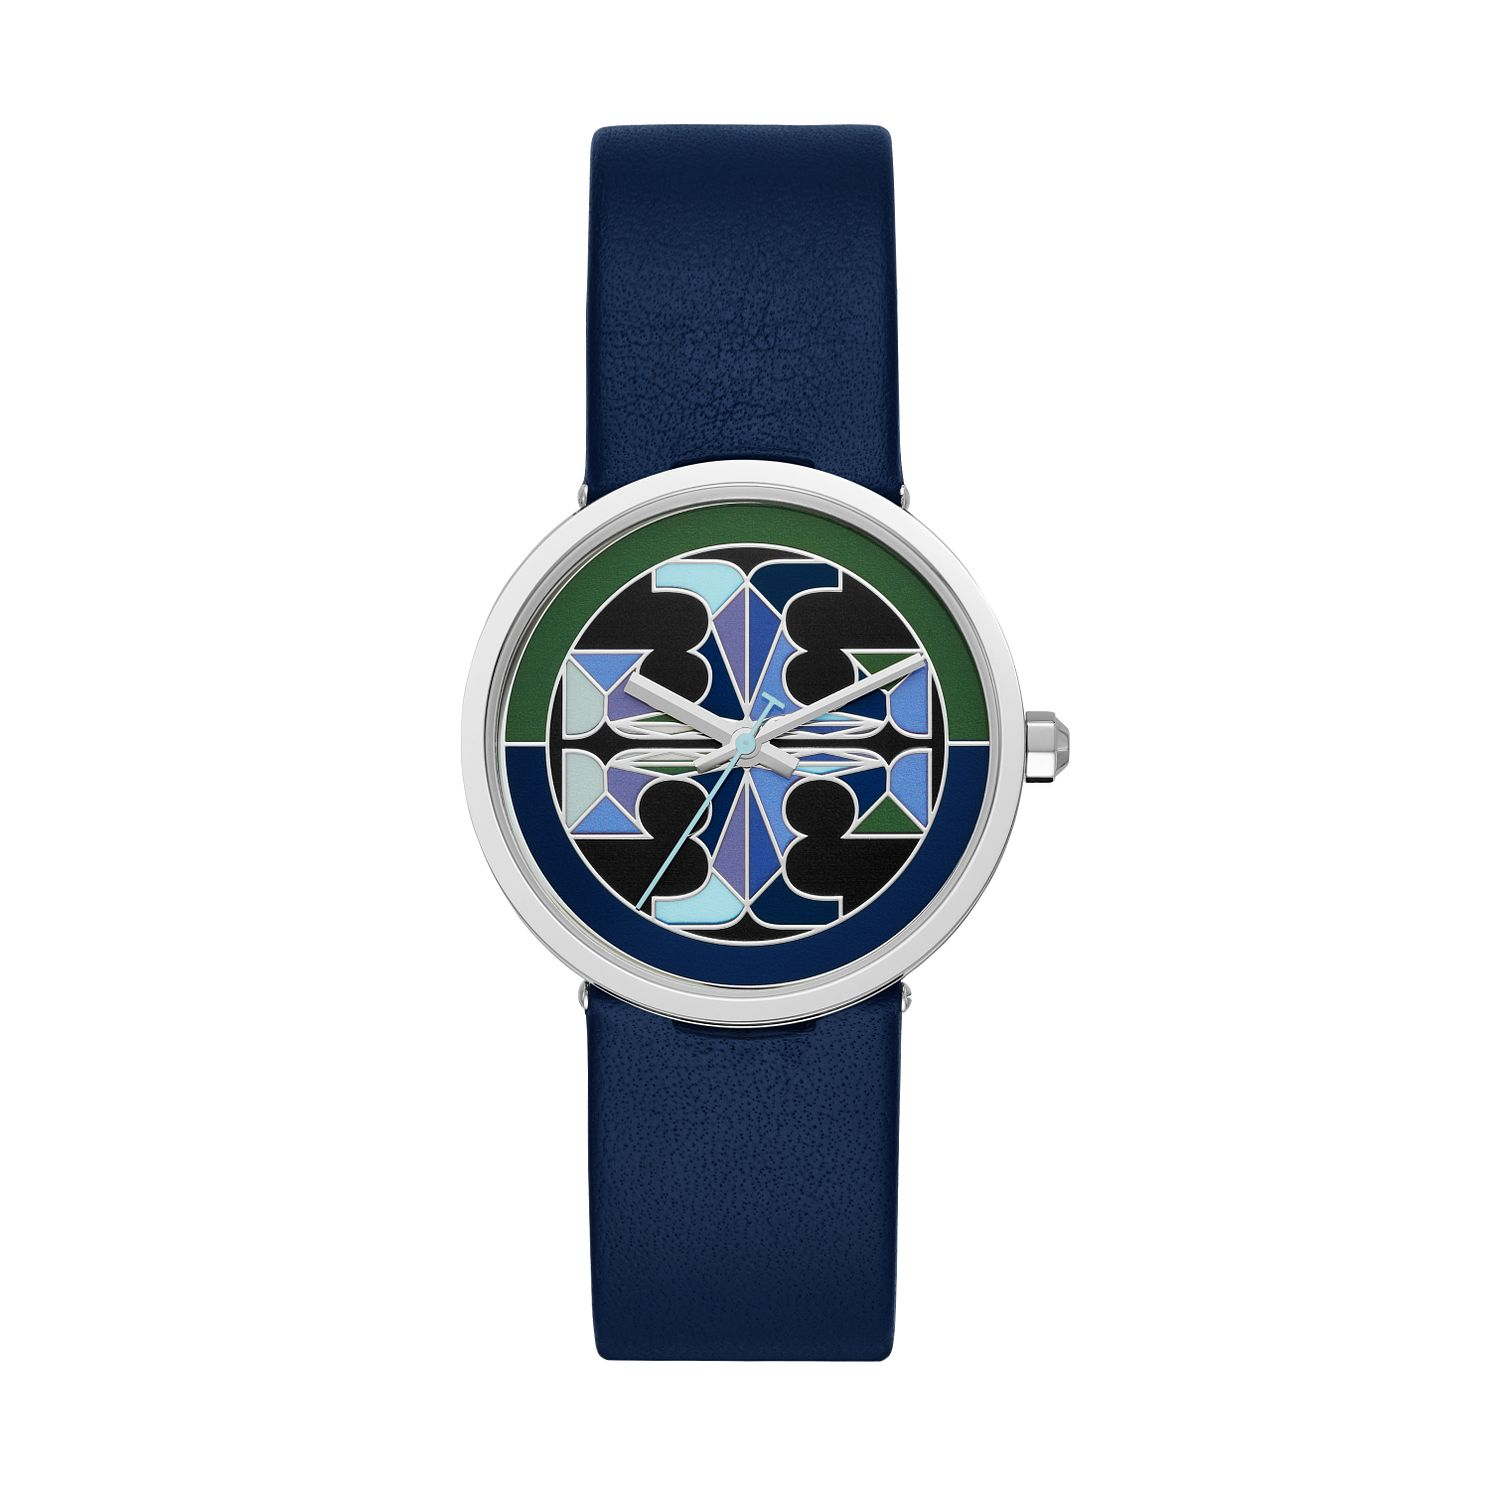 Tory Burch Reva Ladies' Navy Leather Strap Watch - Product number 3484483